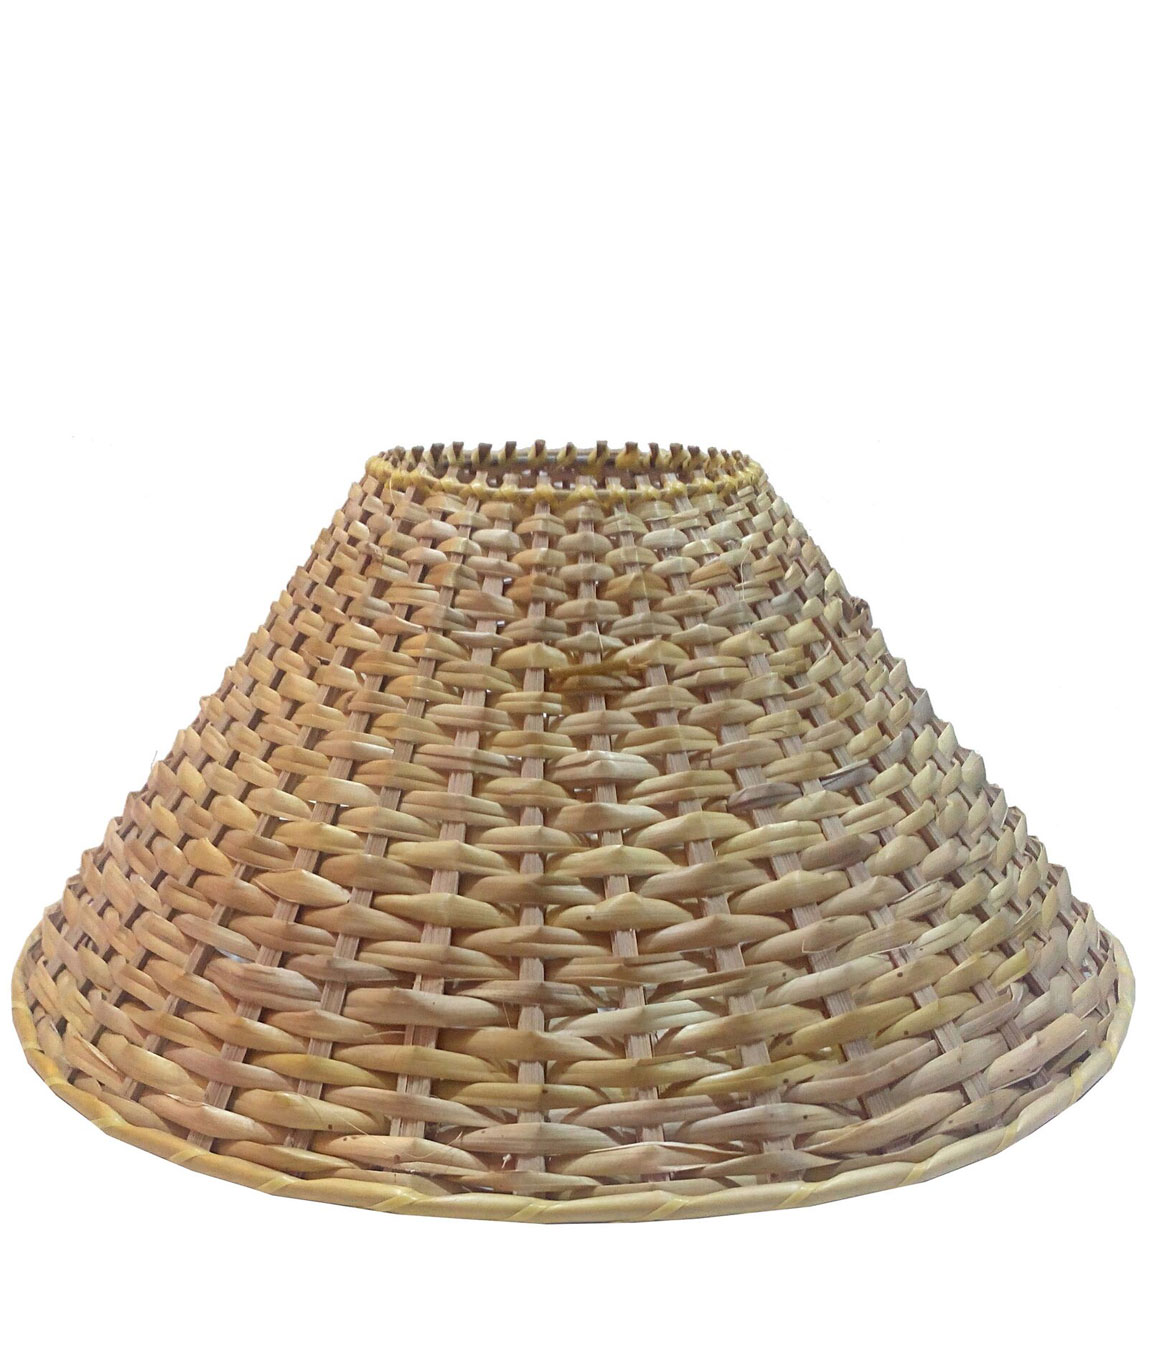 RDC 13 Inches Round Cane Lamp Shade for Lamp